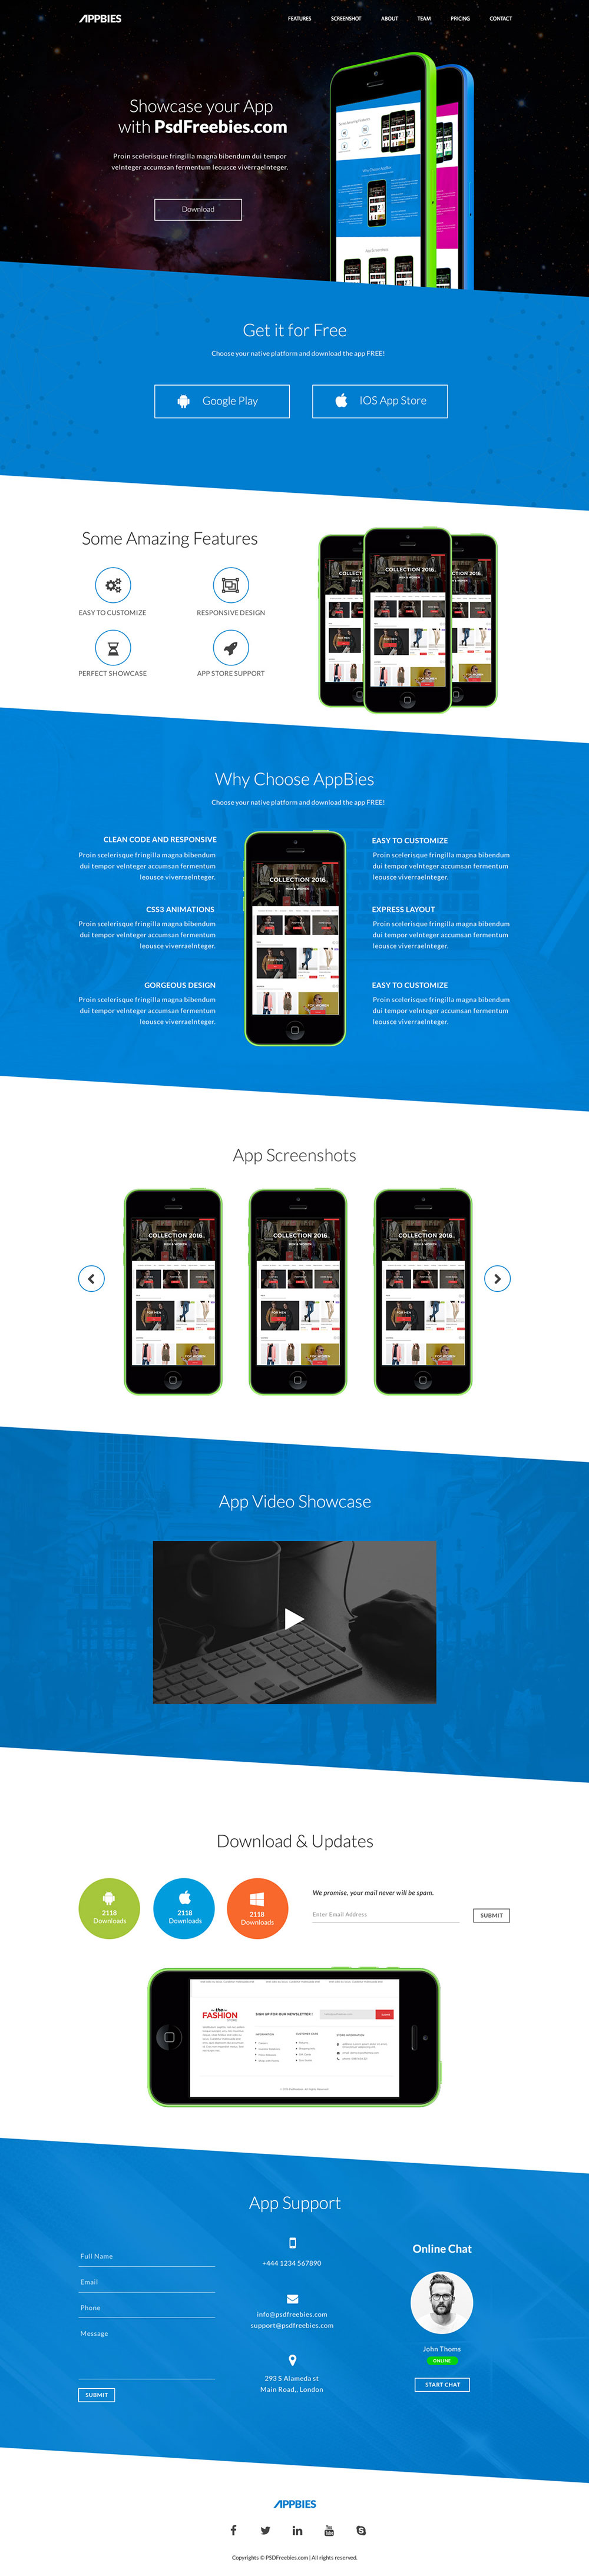 One-Page-App-Landing-Free-PSD-Template